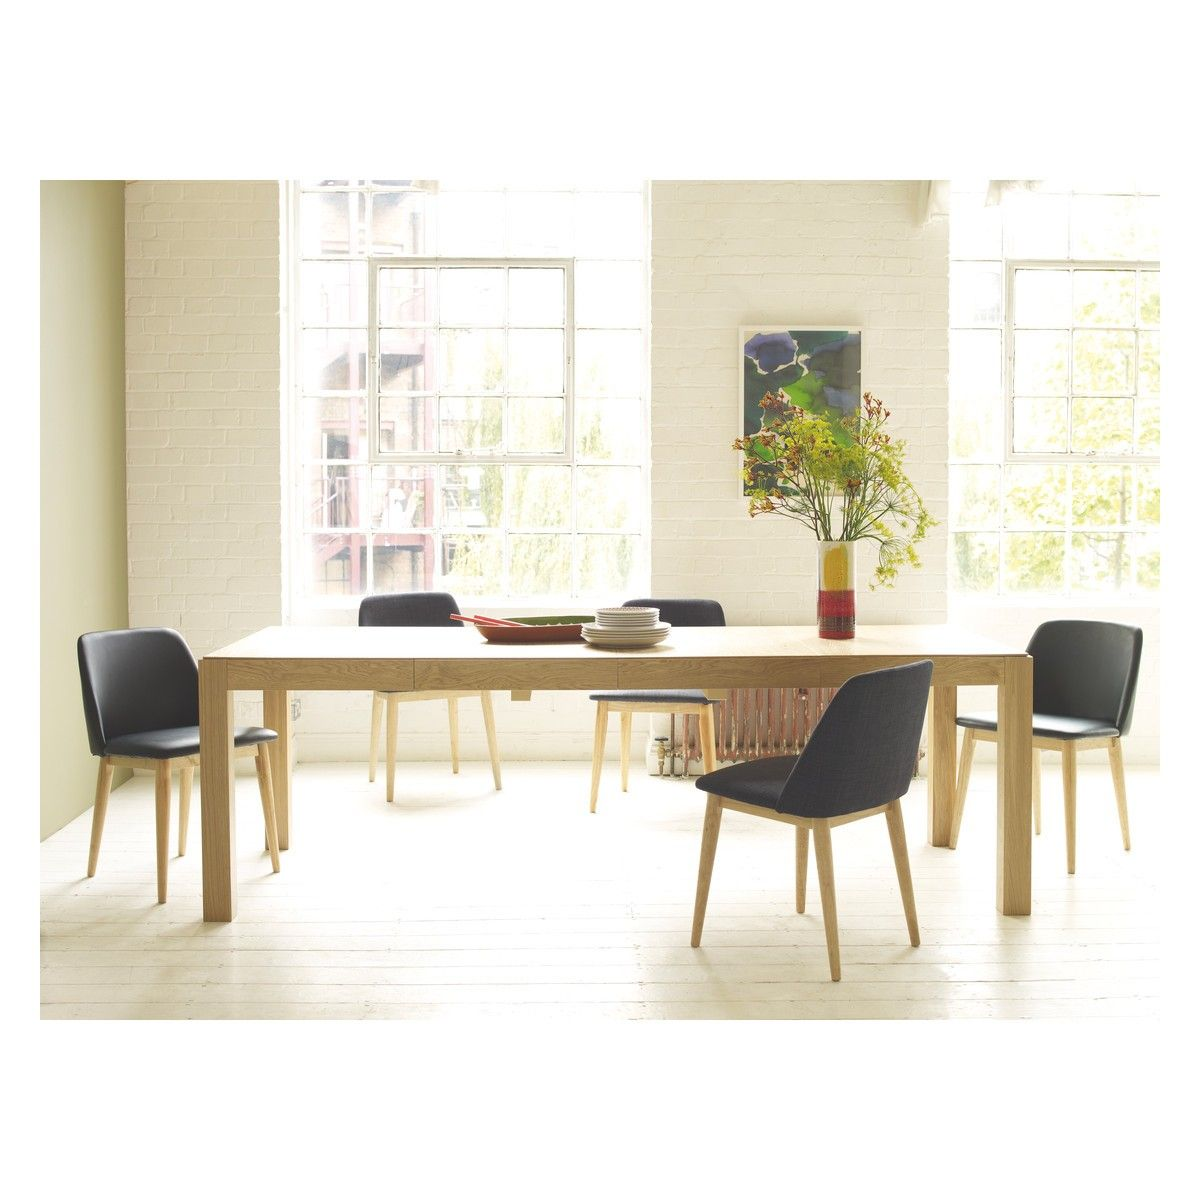 DRIO 4 10 Seat Oak Extending Dining Table